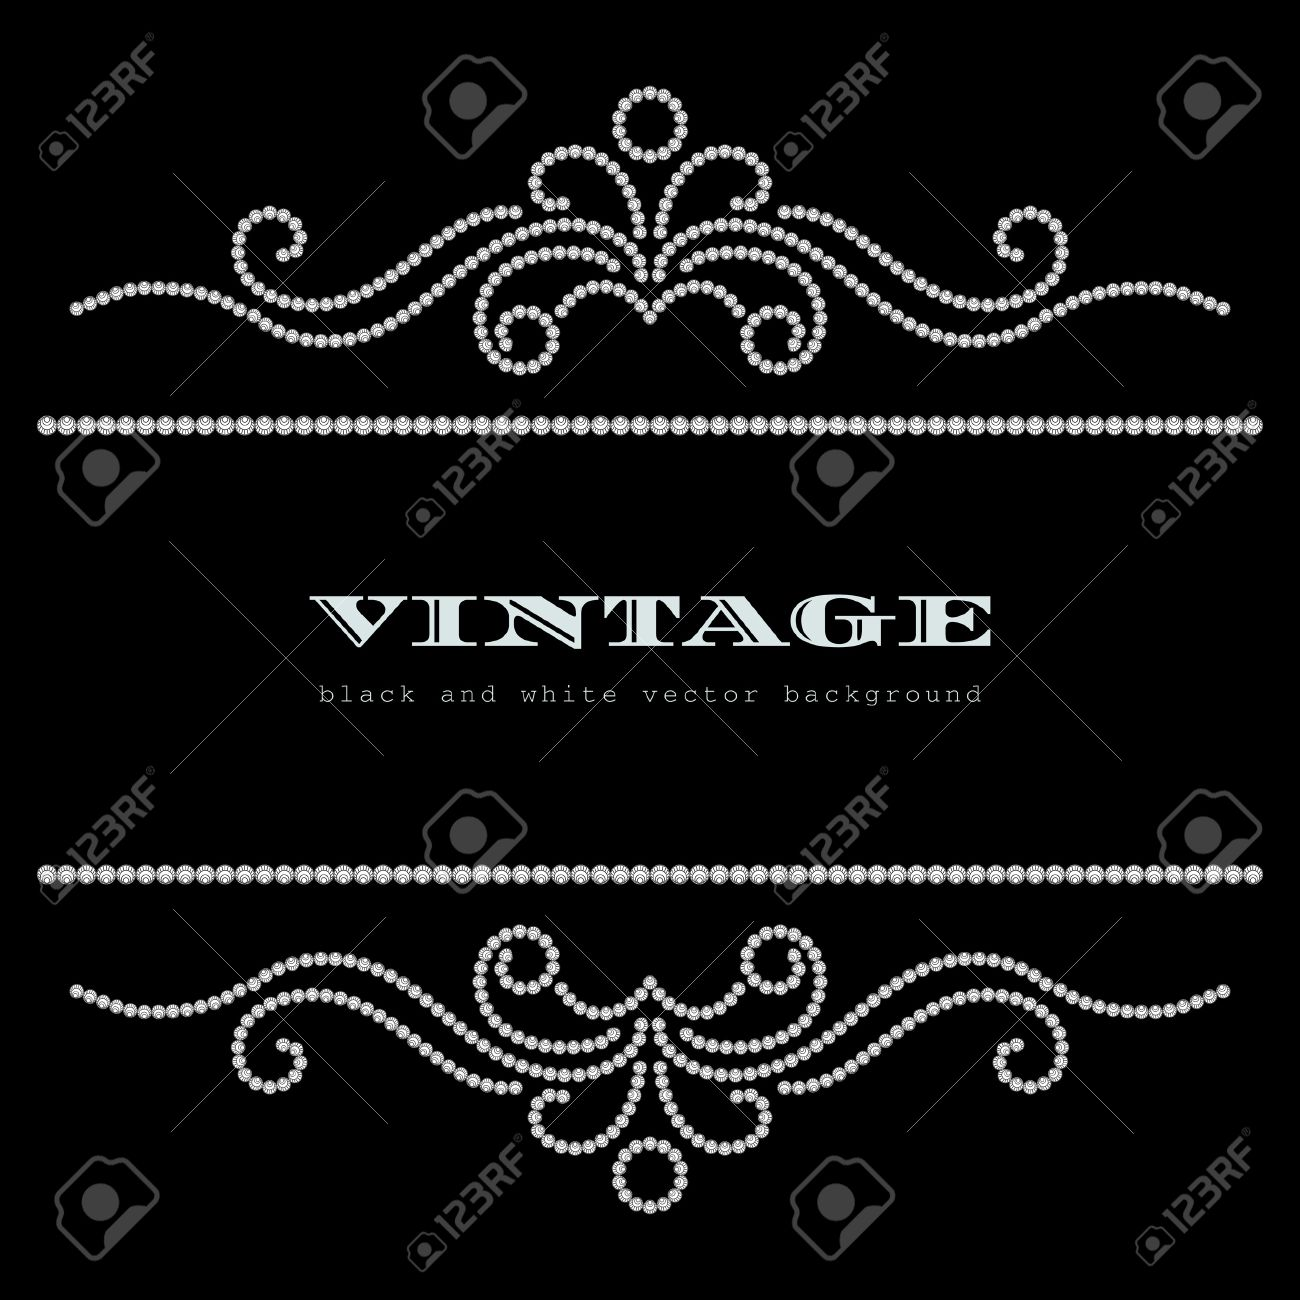 Black and white vintage jewelry background Stock Vector - 20230907